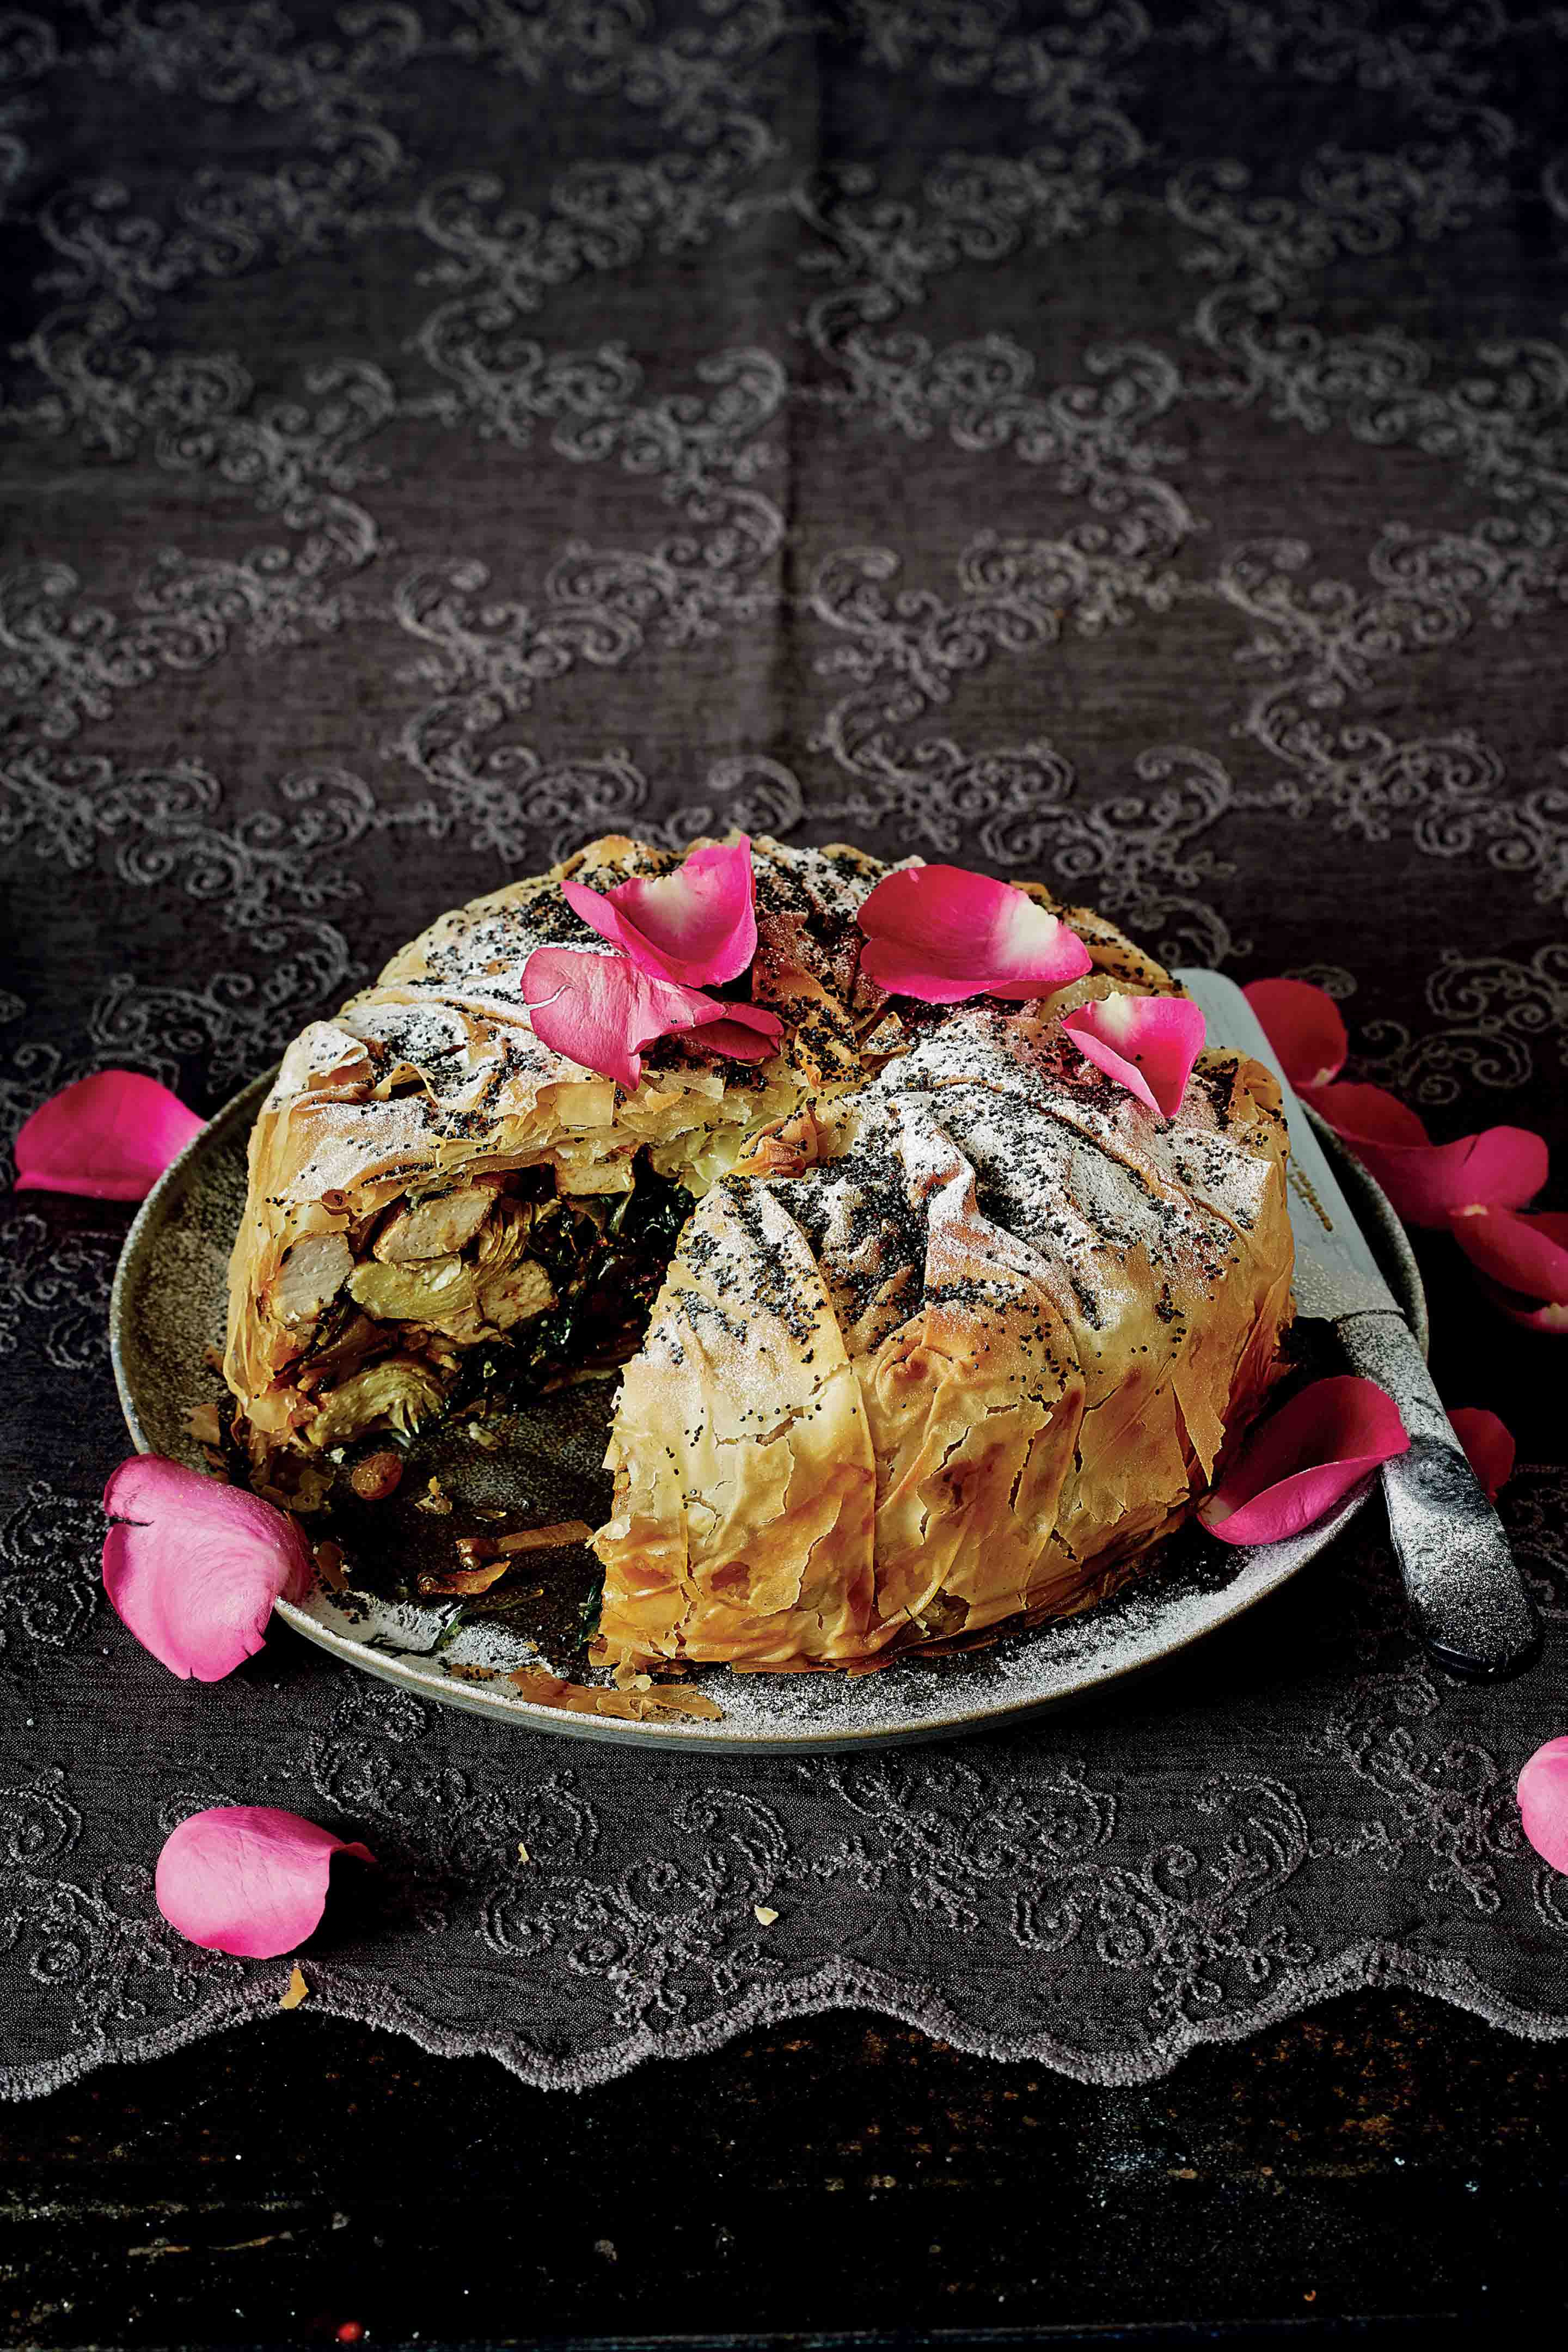 Artichoke, potato, spinach & tofu b'stilla with poppy seeds & rose petals